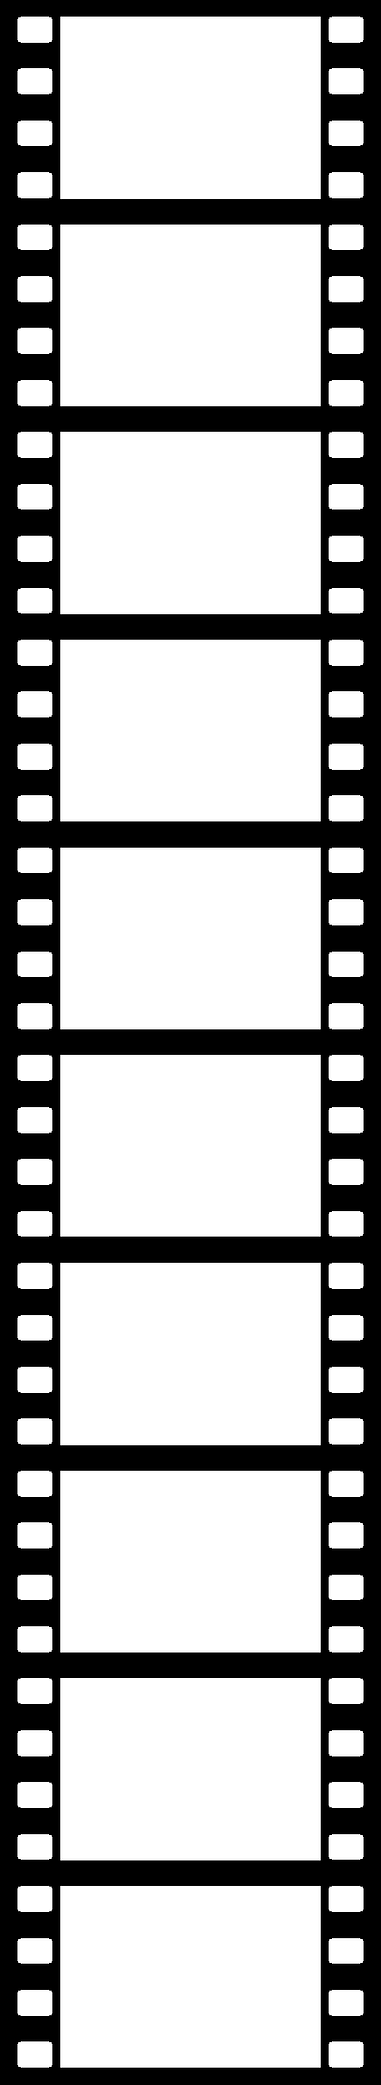 vertical-film-strip-png-4.png